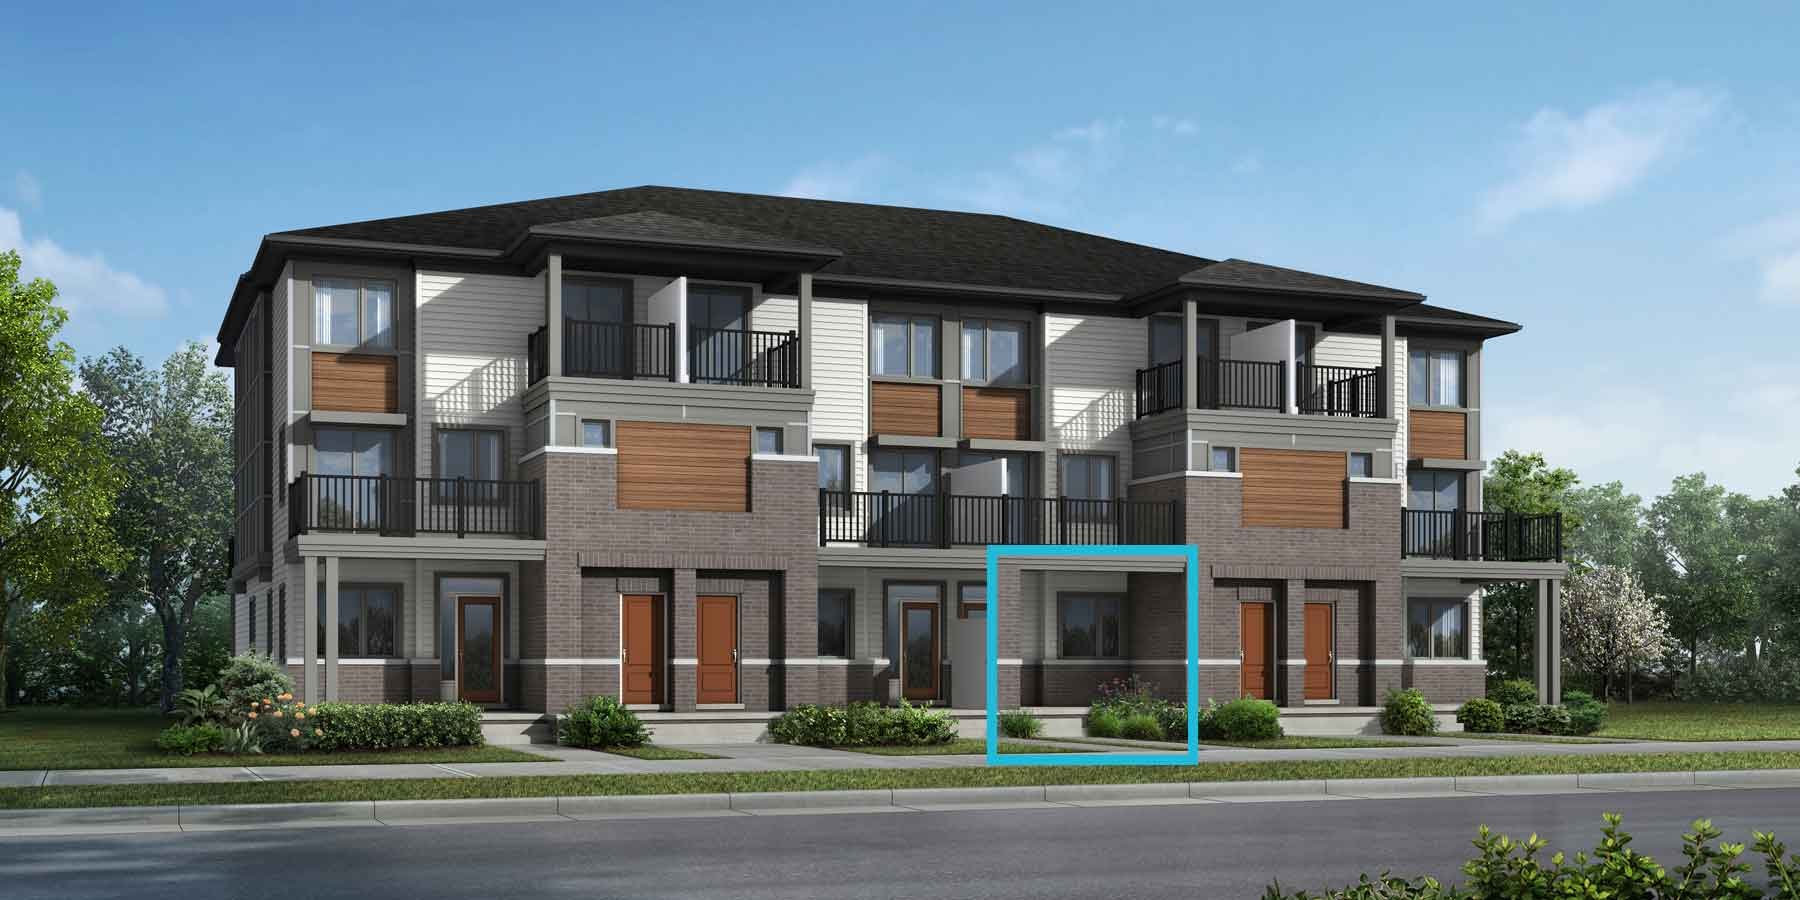 Foxglove Plan TownHomes at Blackstone South in Kanata Ontario by Mattamy Homes